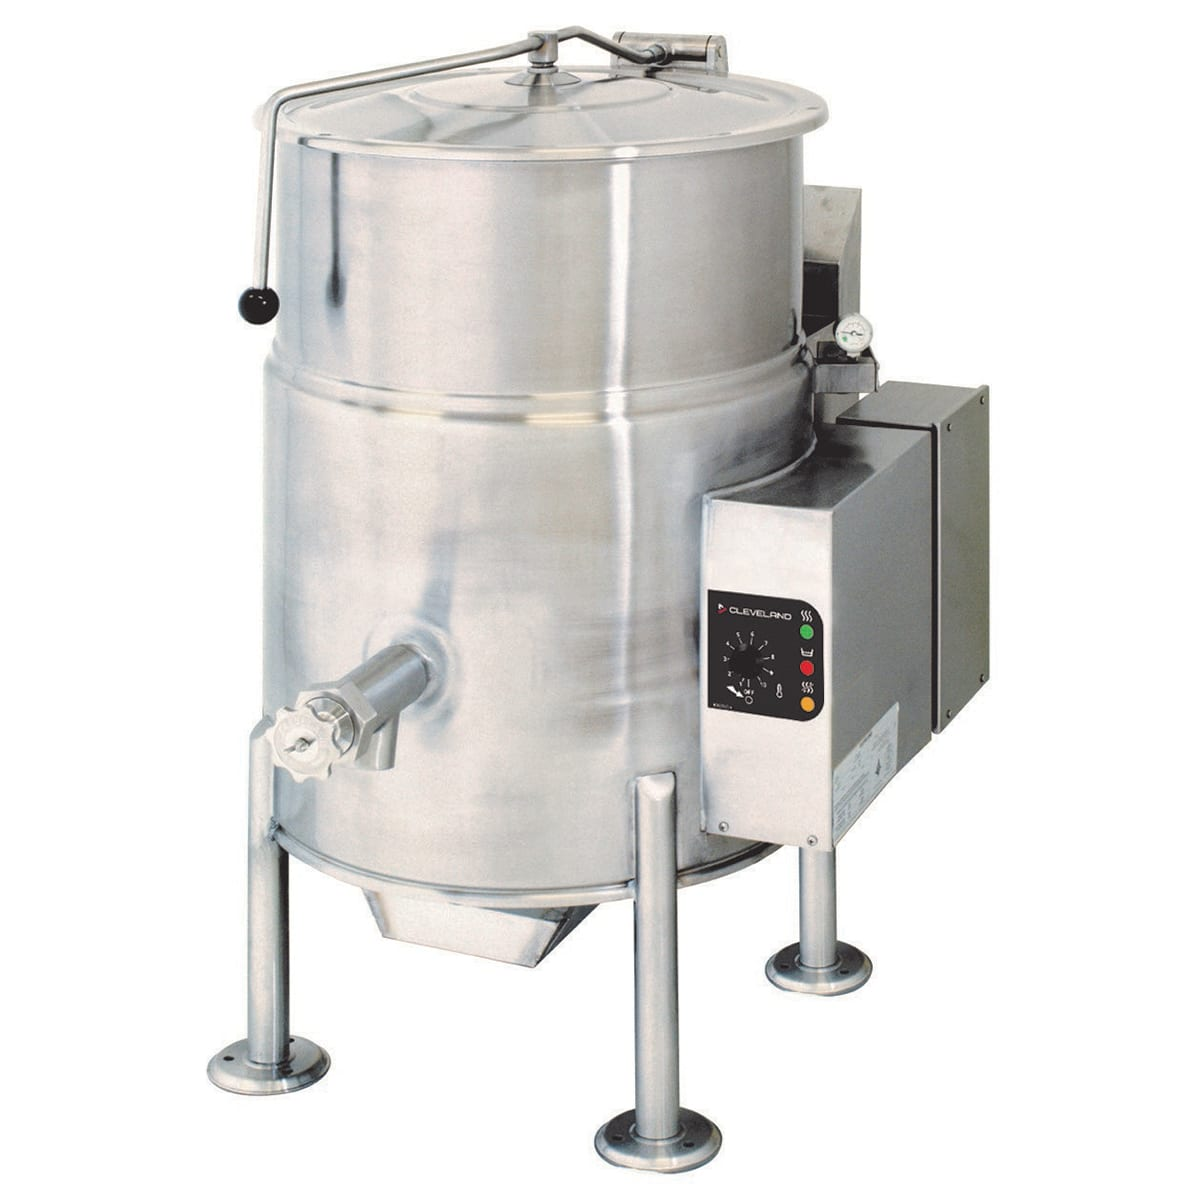 Cleveland KGL25 25-Gallon Stationary Kettle w/ Electronic Ignition, 2/3 Steam Jacket, NG